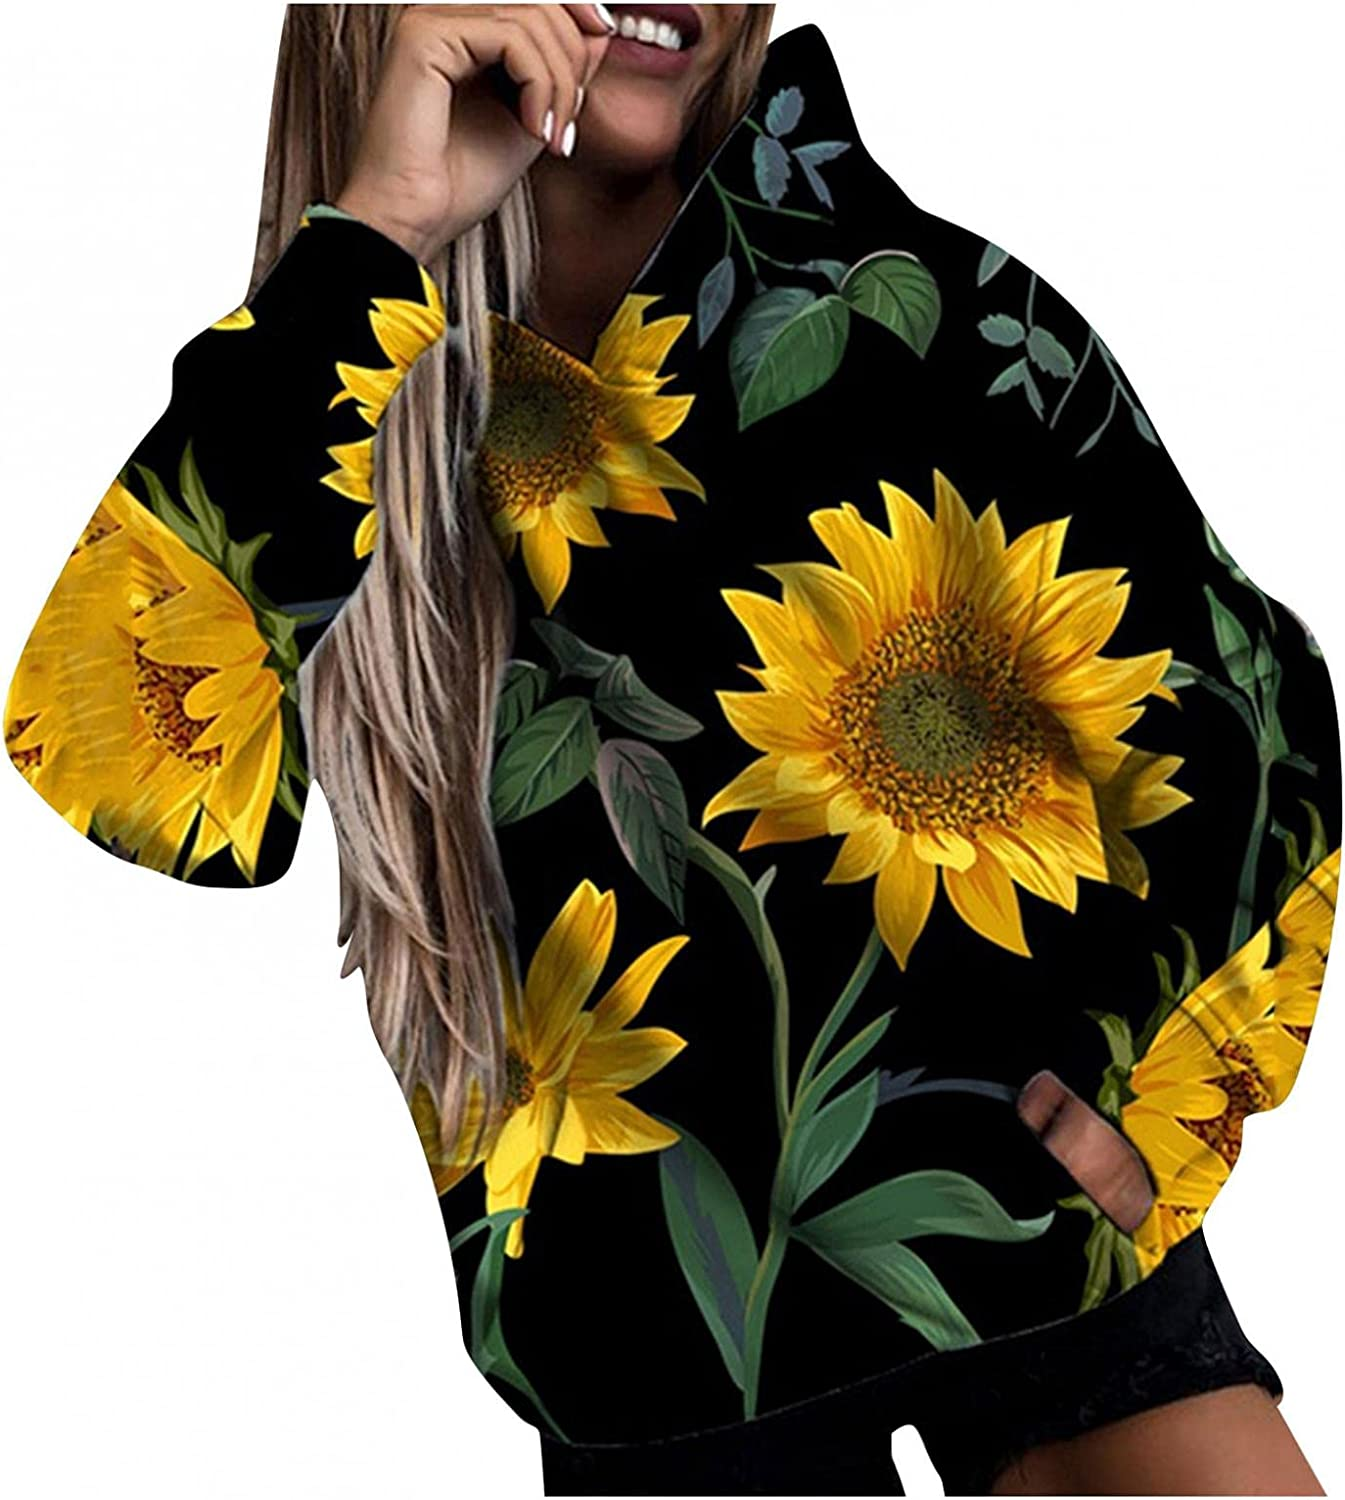 Qisemi Hooded Sweatshirts for Women Sweat Floral Fashion Ranking TOP19 Super special price Graphic